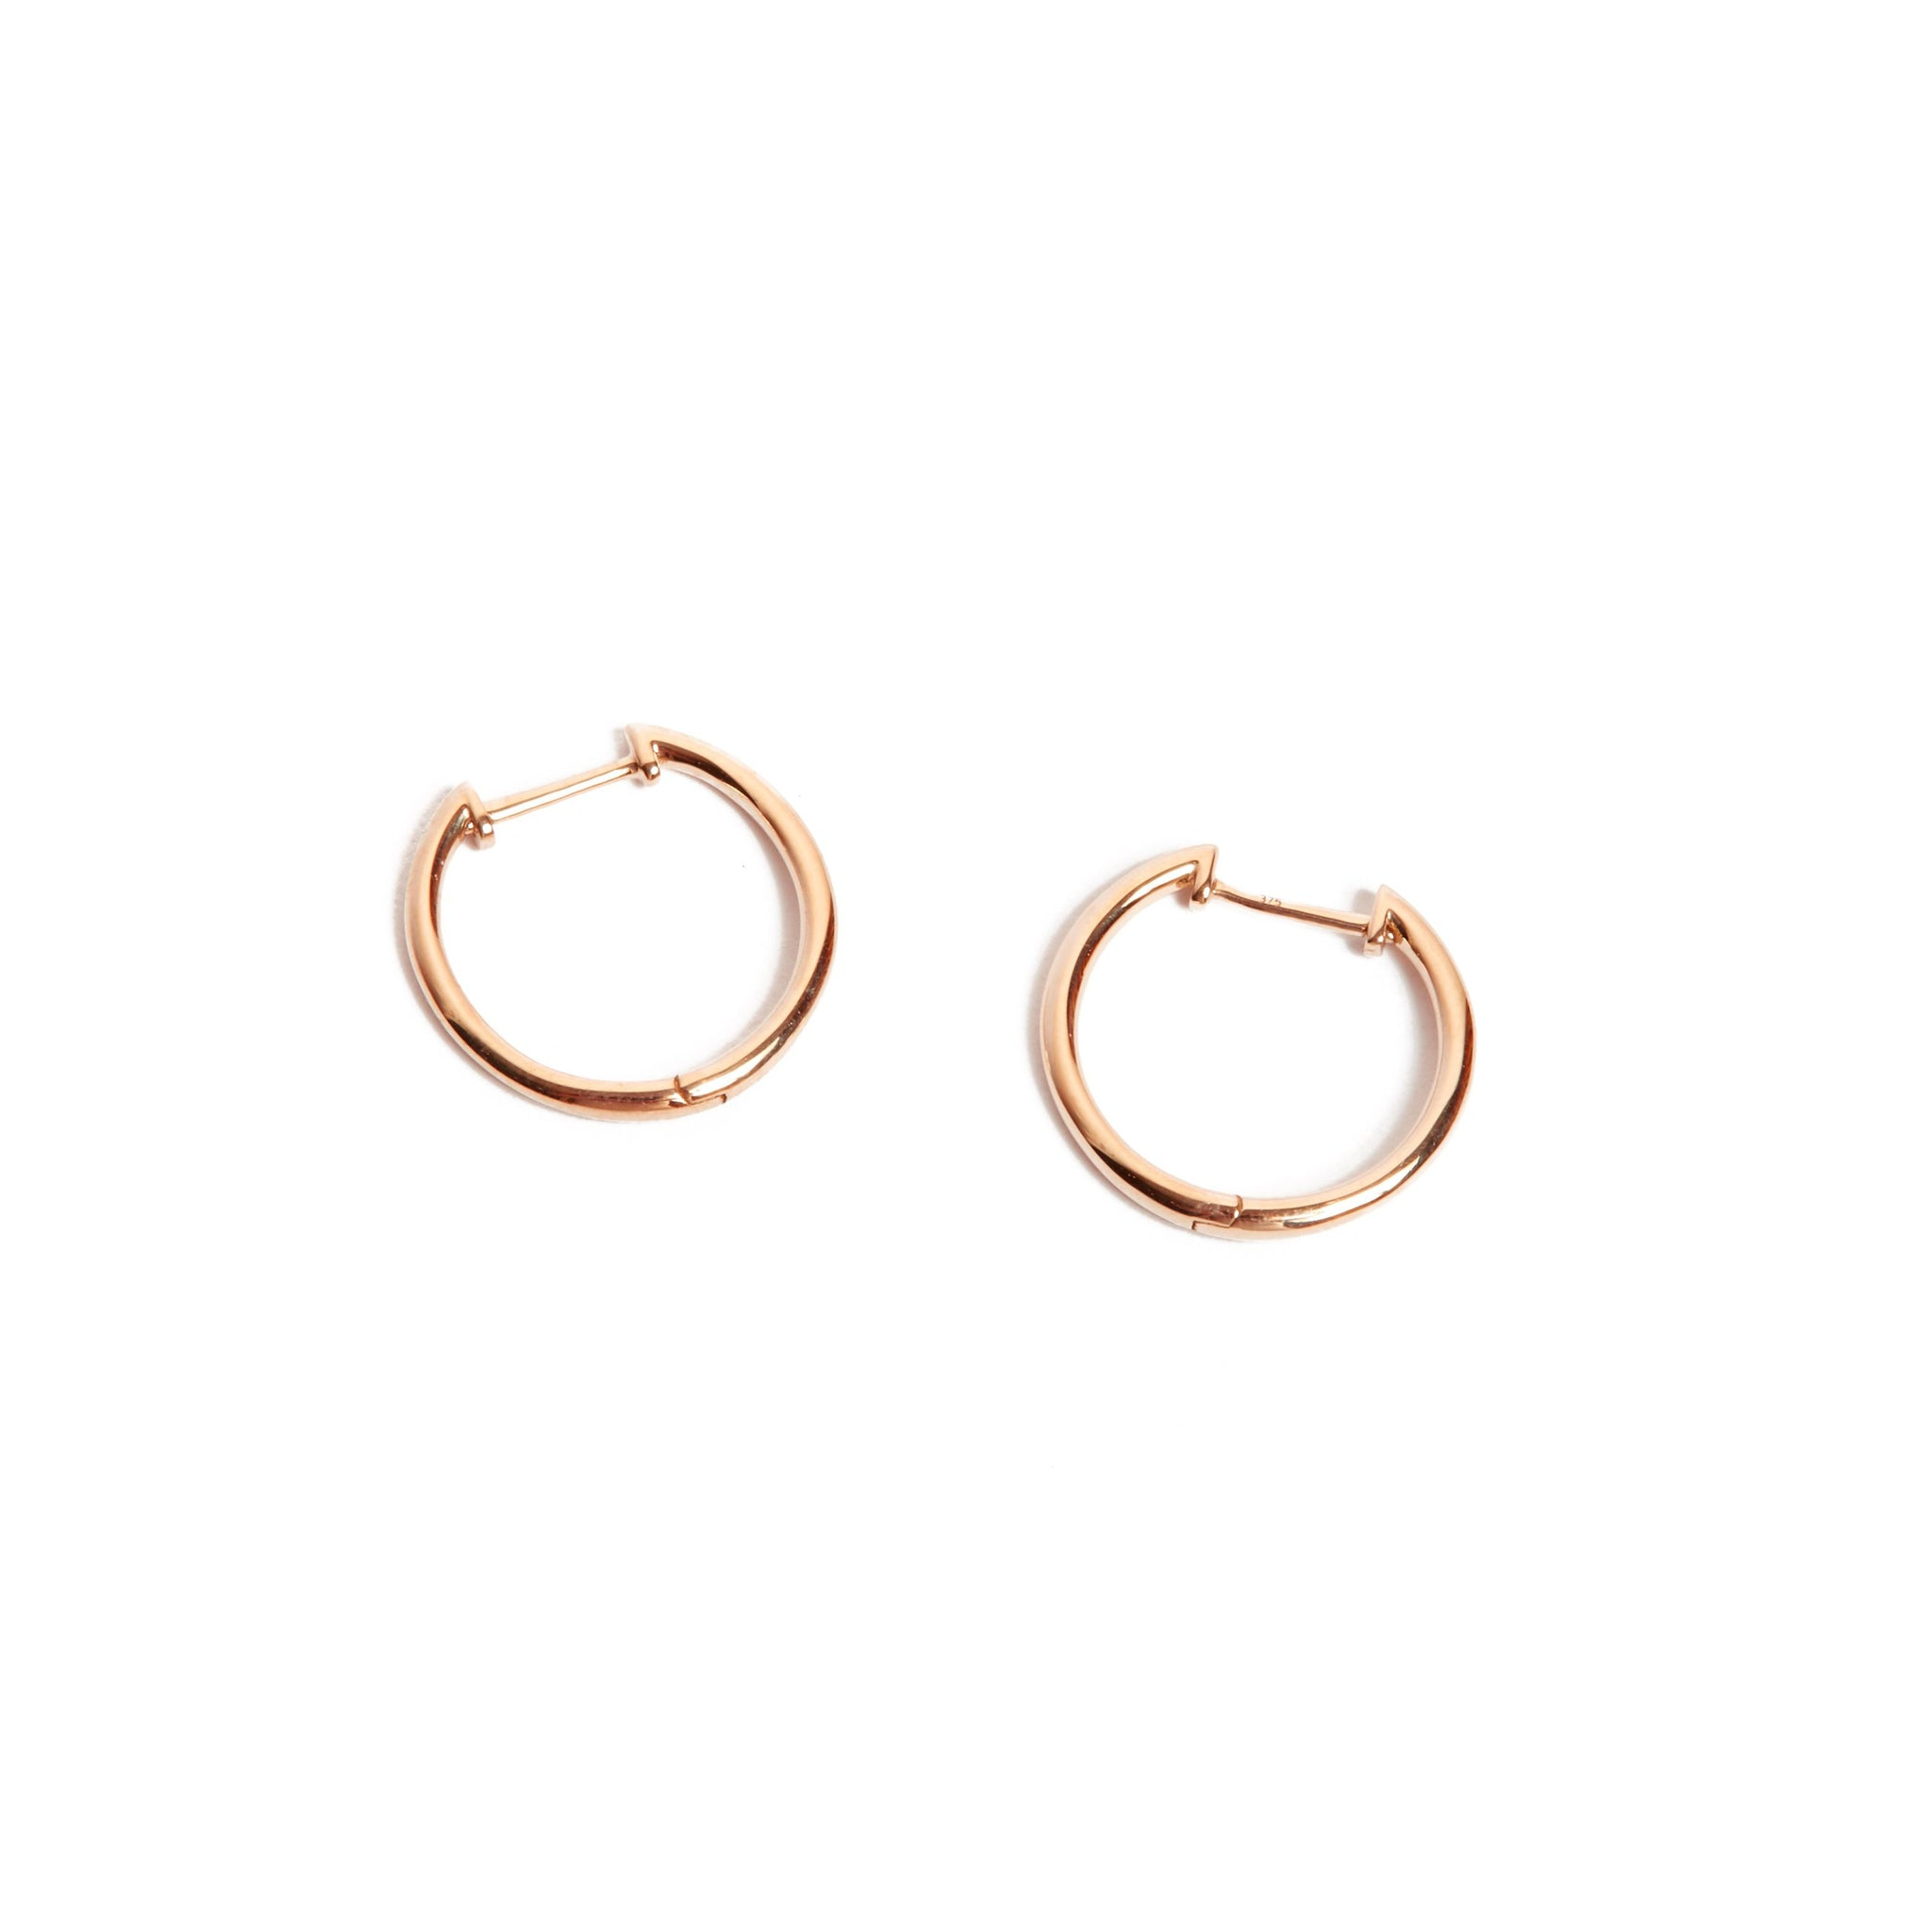 JEWELLERY MAKING ROUND 9ct YELLOW GOLD WIRE 1.3MM 10mm